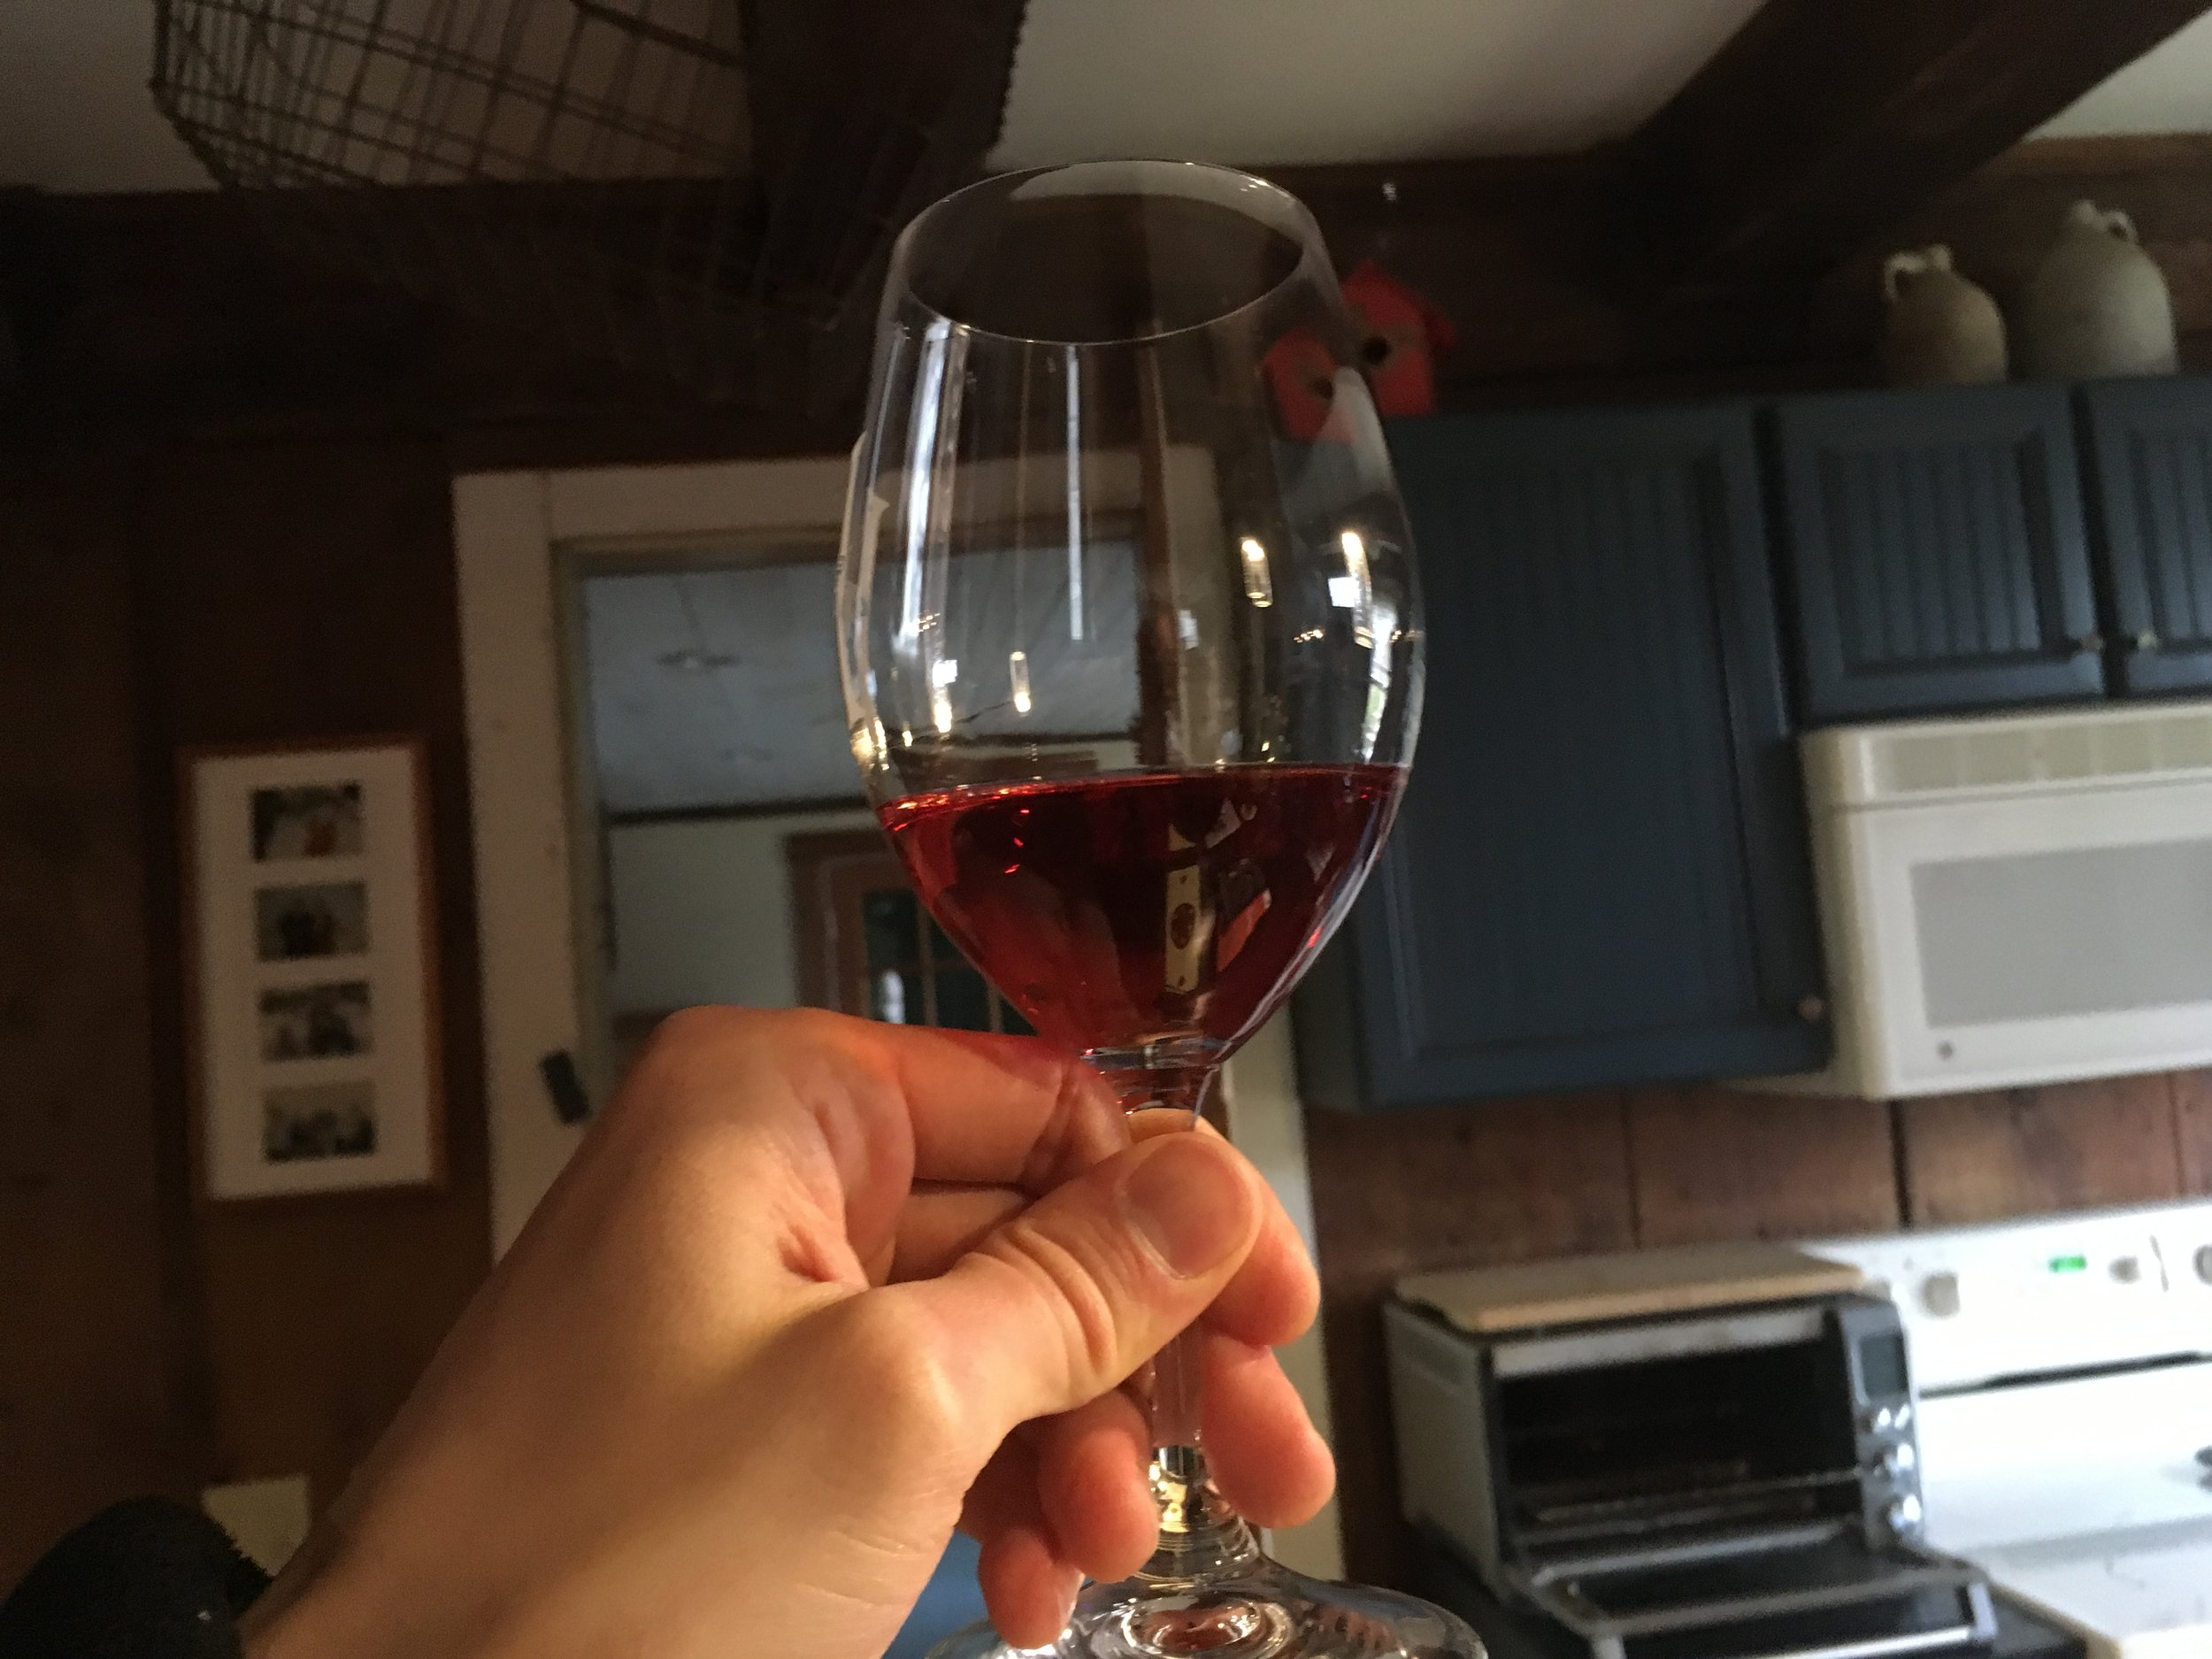 Sam tries a glass of knotweed wine   Photo: Taylor Quimby